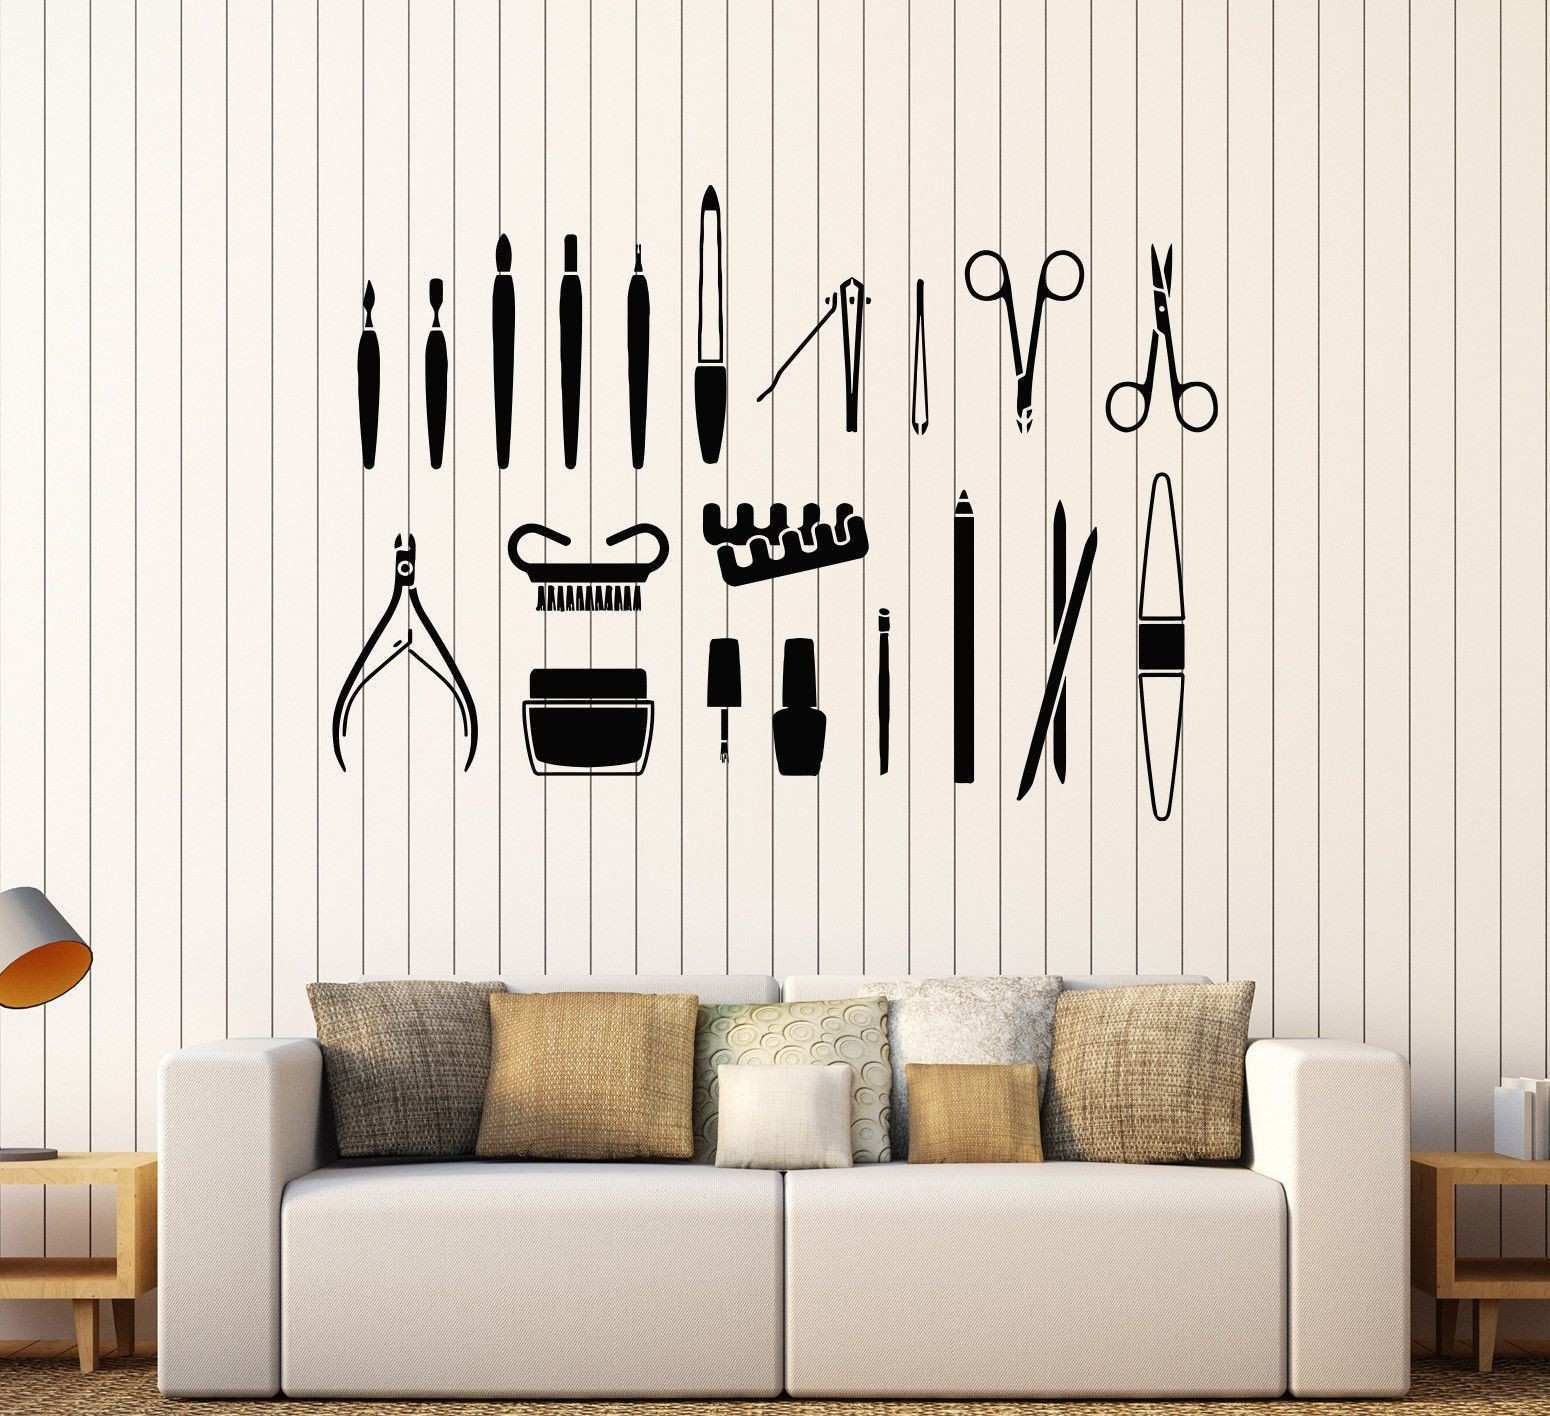 Vinyl Wall Decal Beauty Salon Tools Nail Manicure Stylist Stickers